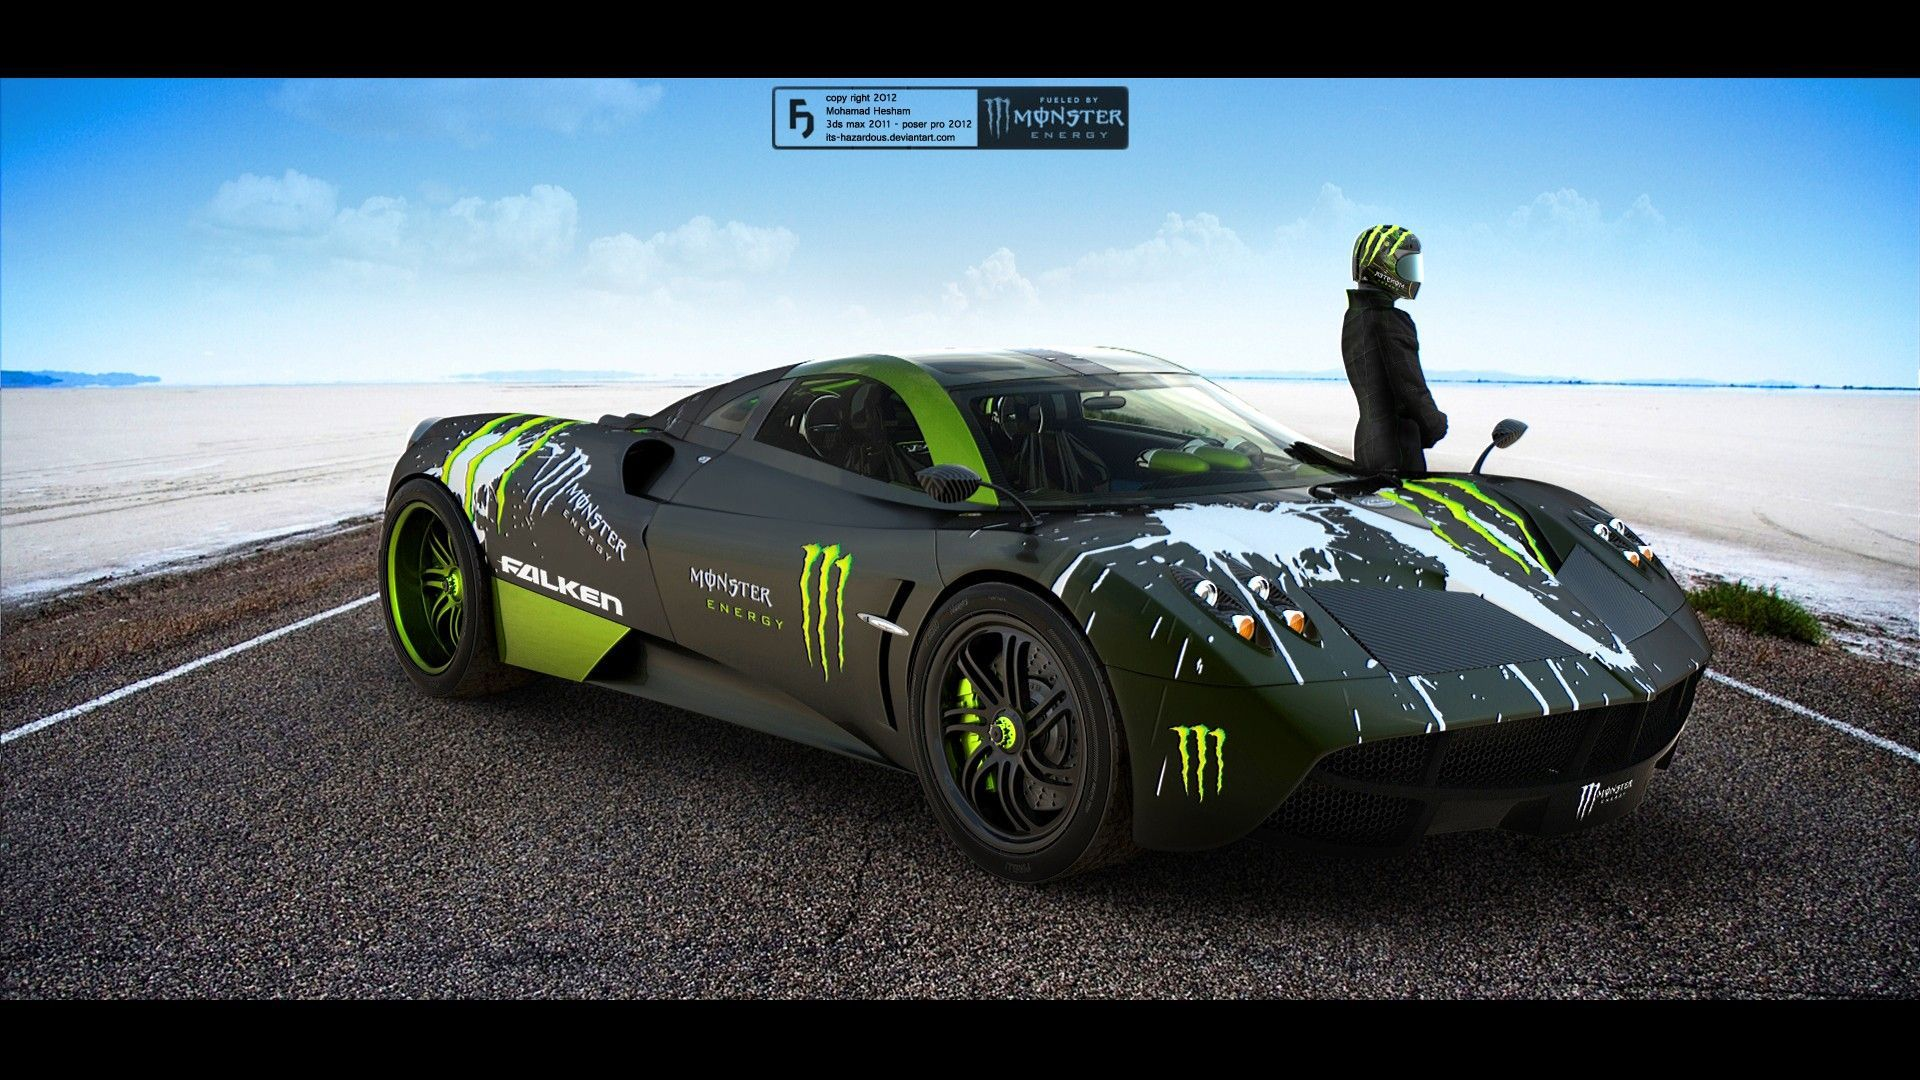 Monster Energy Car Wallpaper